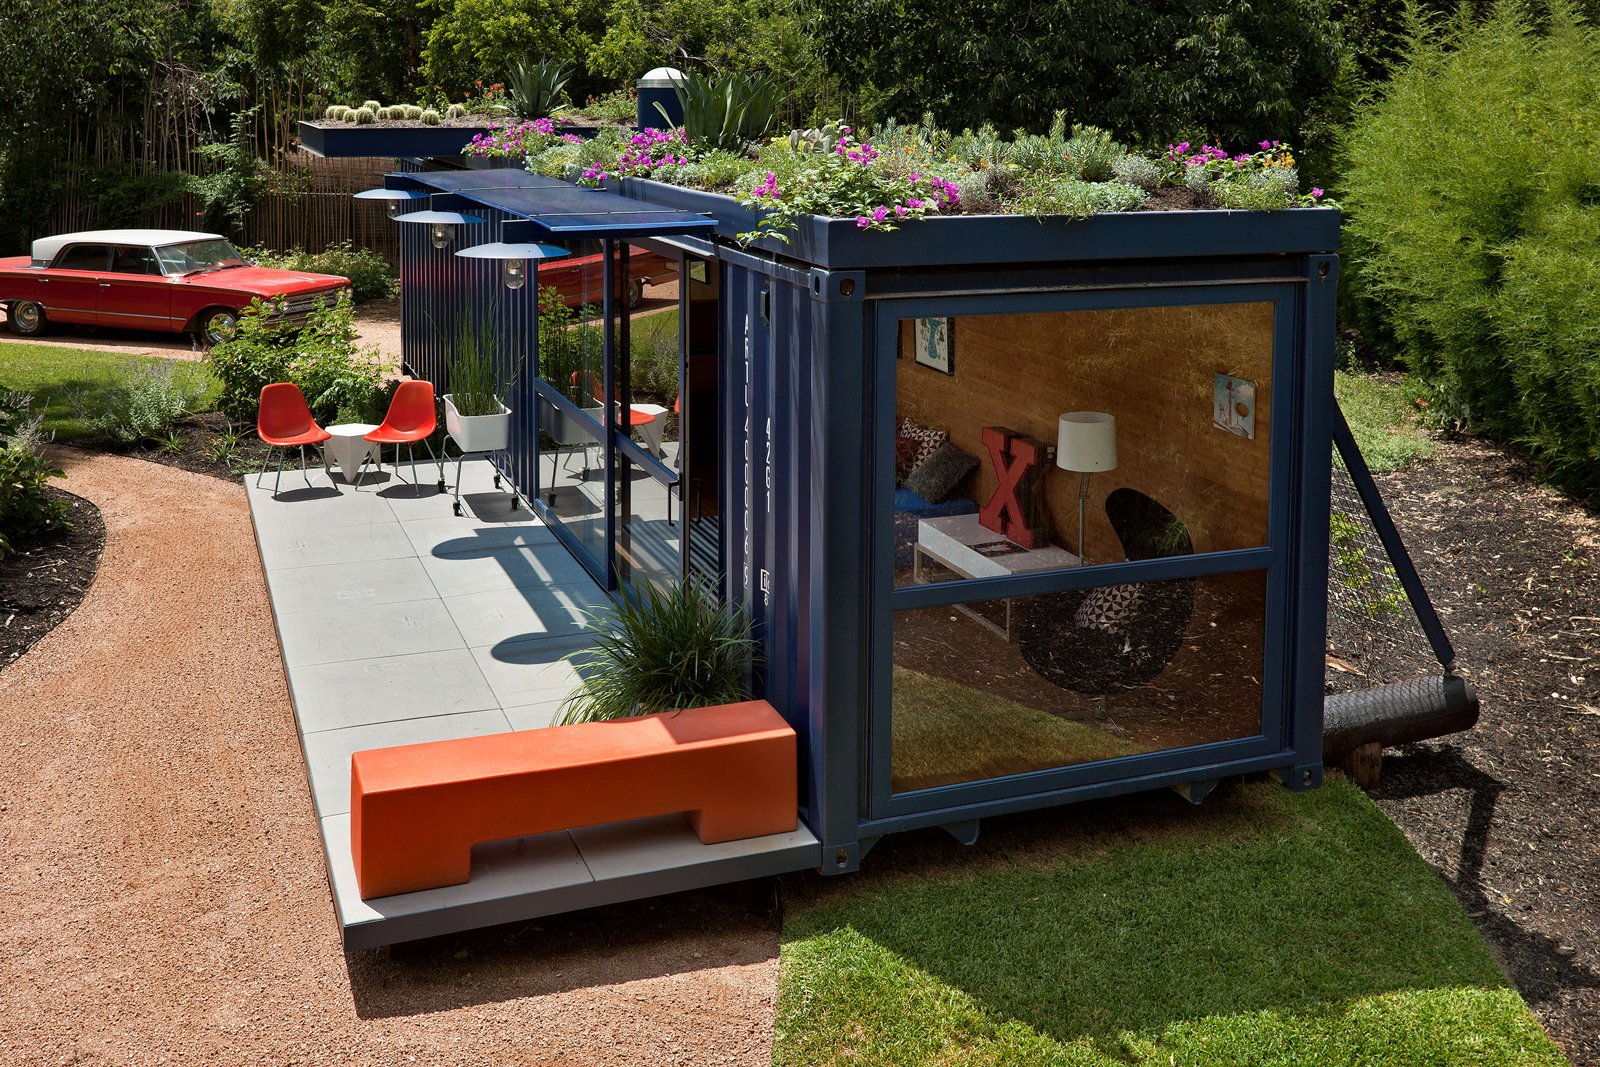 Jon Ahrens of Madrone Landscaping, who layed out the plantings around the container, implemented a green roof on a drip watering system. The cantilevered overhang at rear is planted with cacti.  Shipping Containers by Dwell